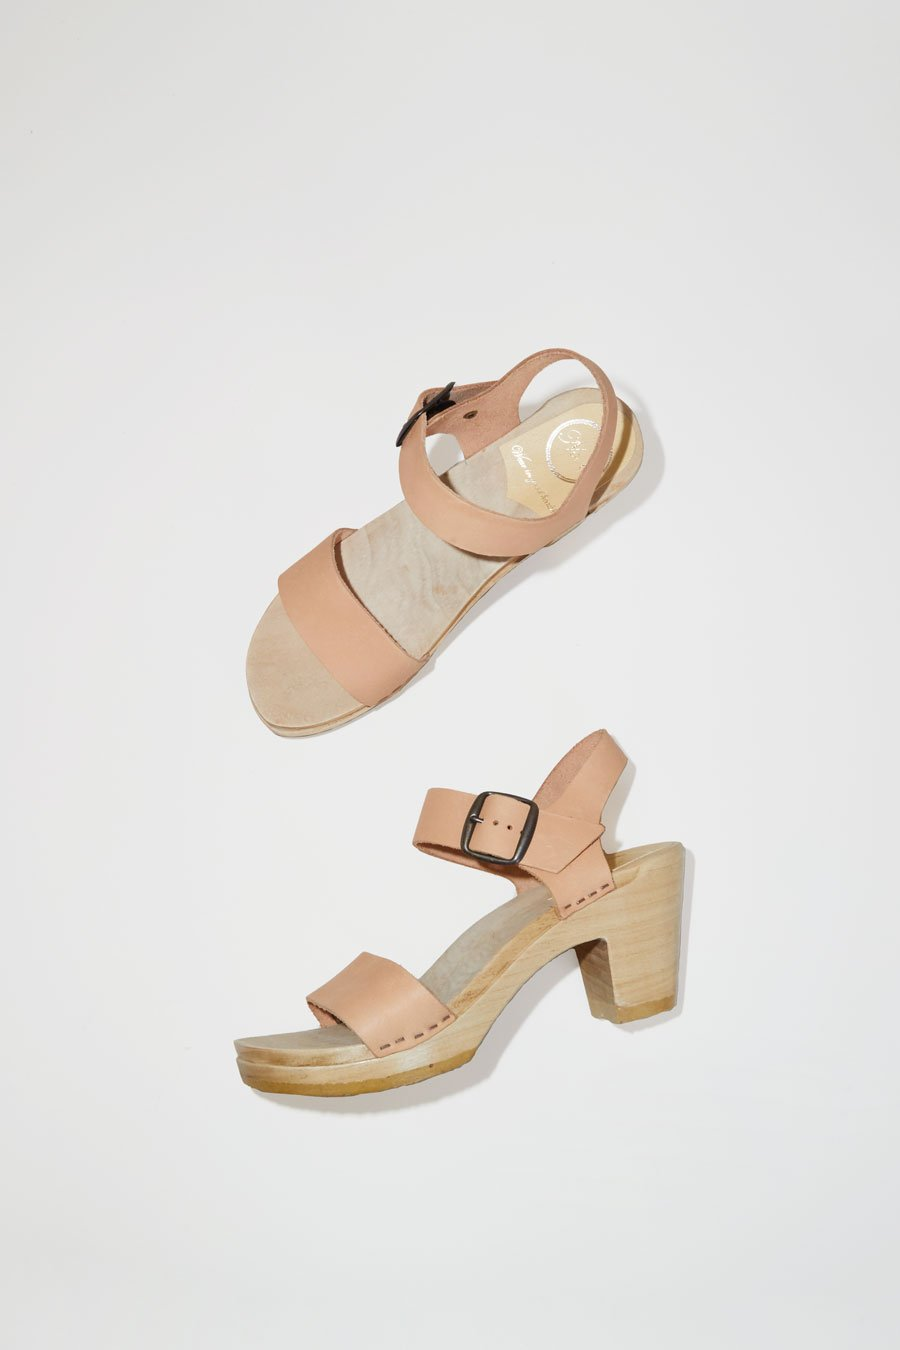 No. 6 Two Strap Clog on High Heel in Naked